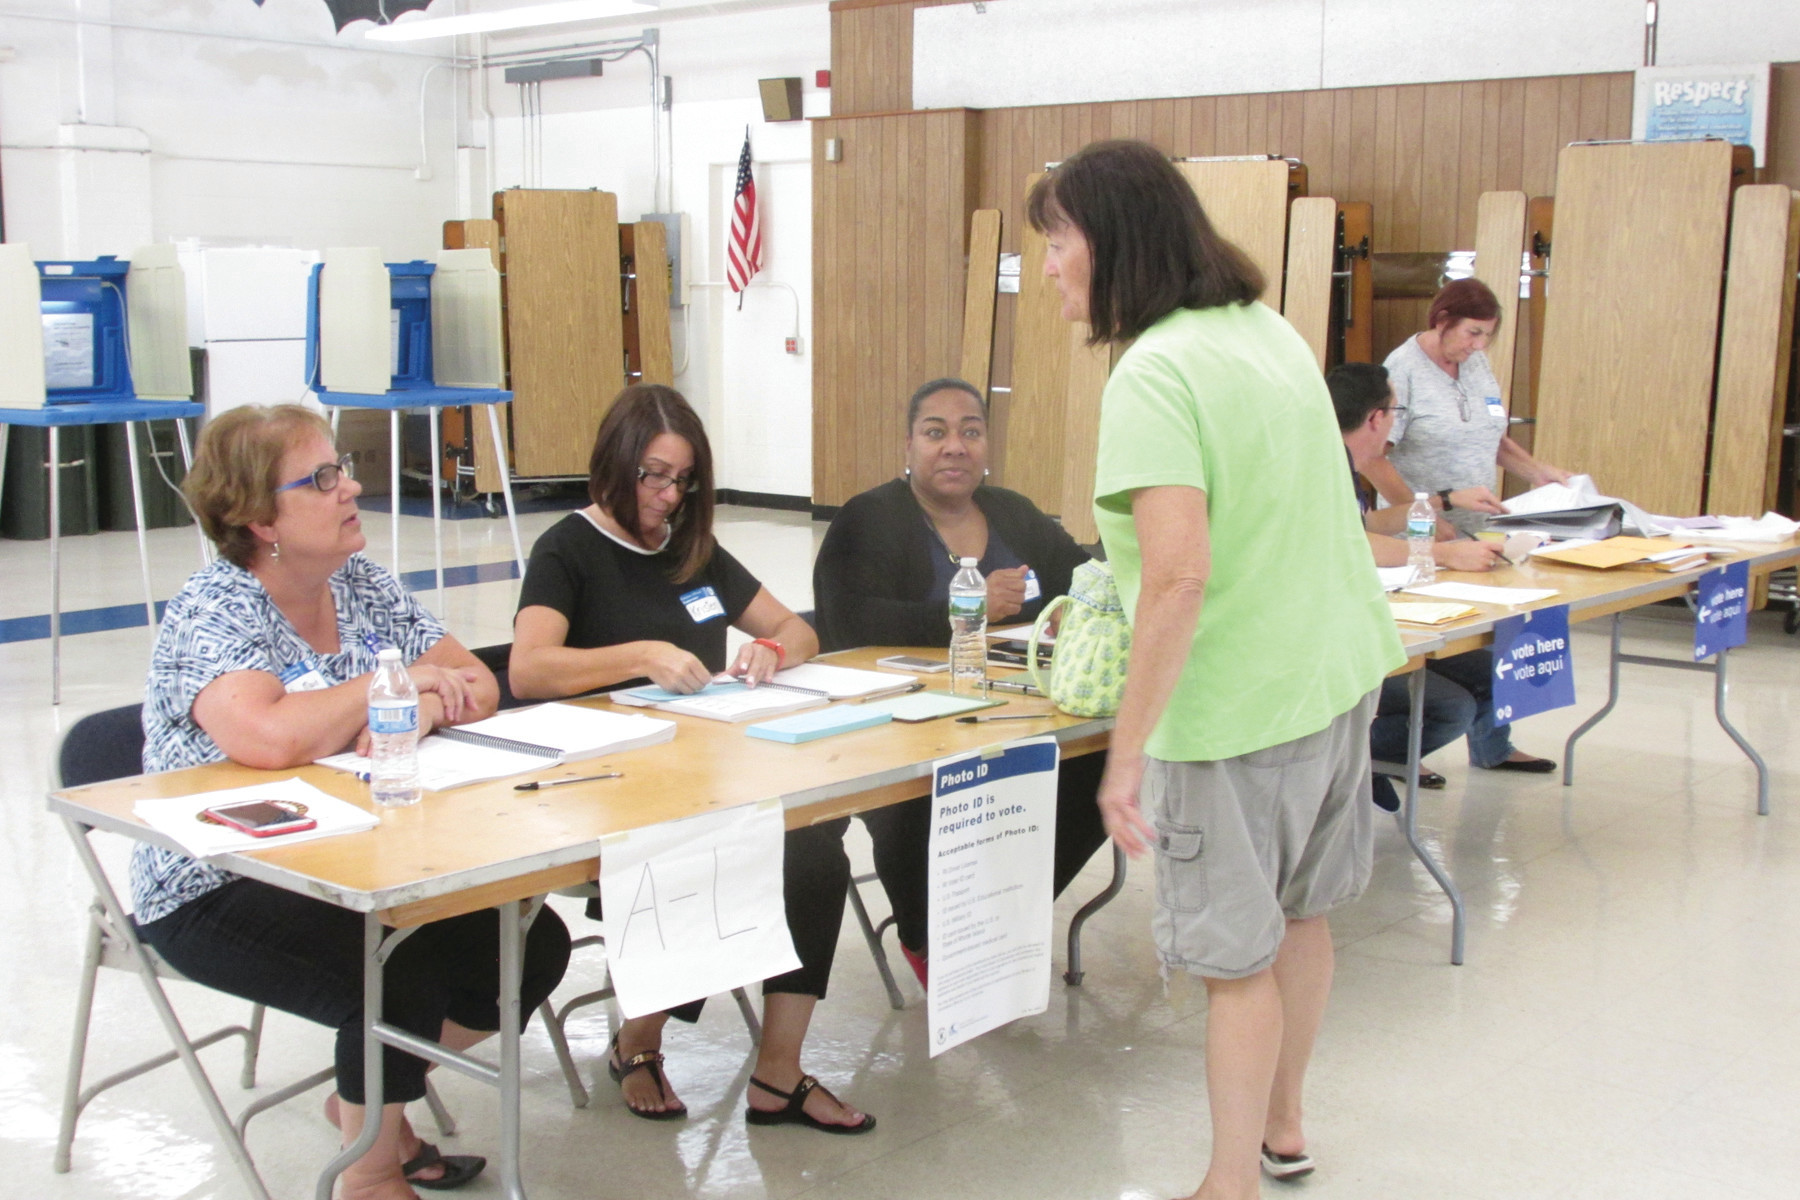 CHECKING IN: A voter checks in with workers who staffed the polling place at Sarah Dyer Barnes Elementary School.